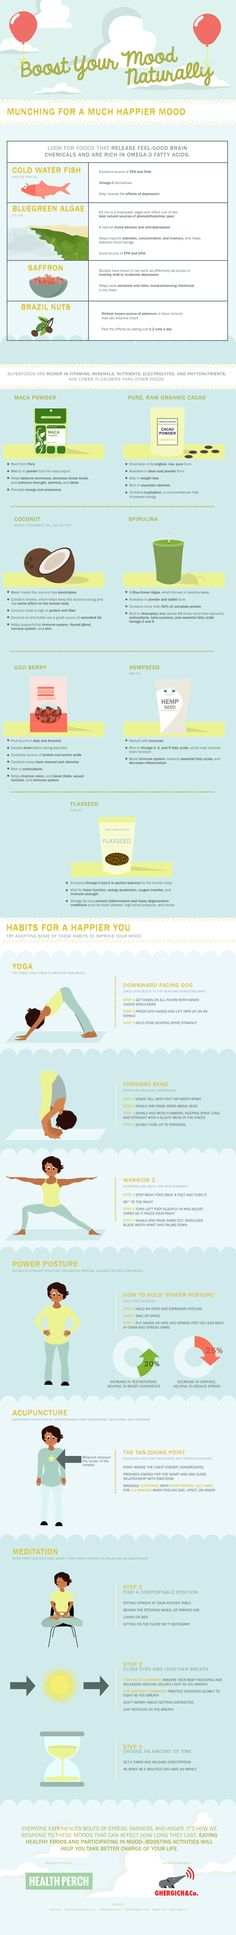 Tips to Boost Your Mood Naturally with These Simple Habits – TIPSÖGRAPHIC